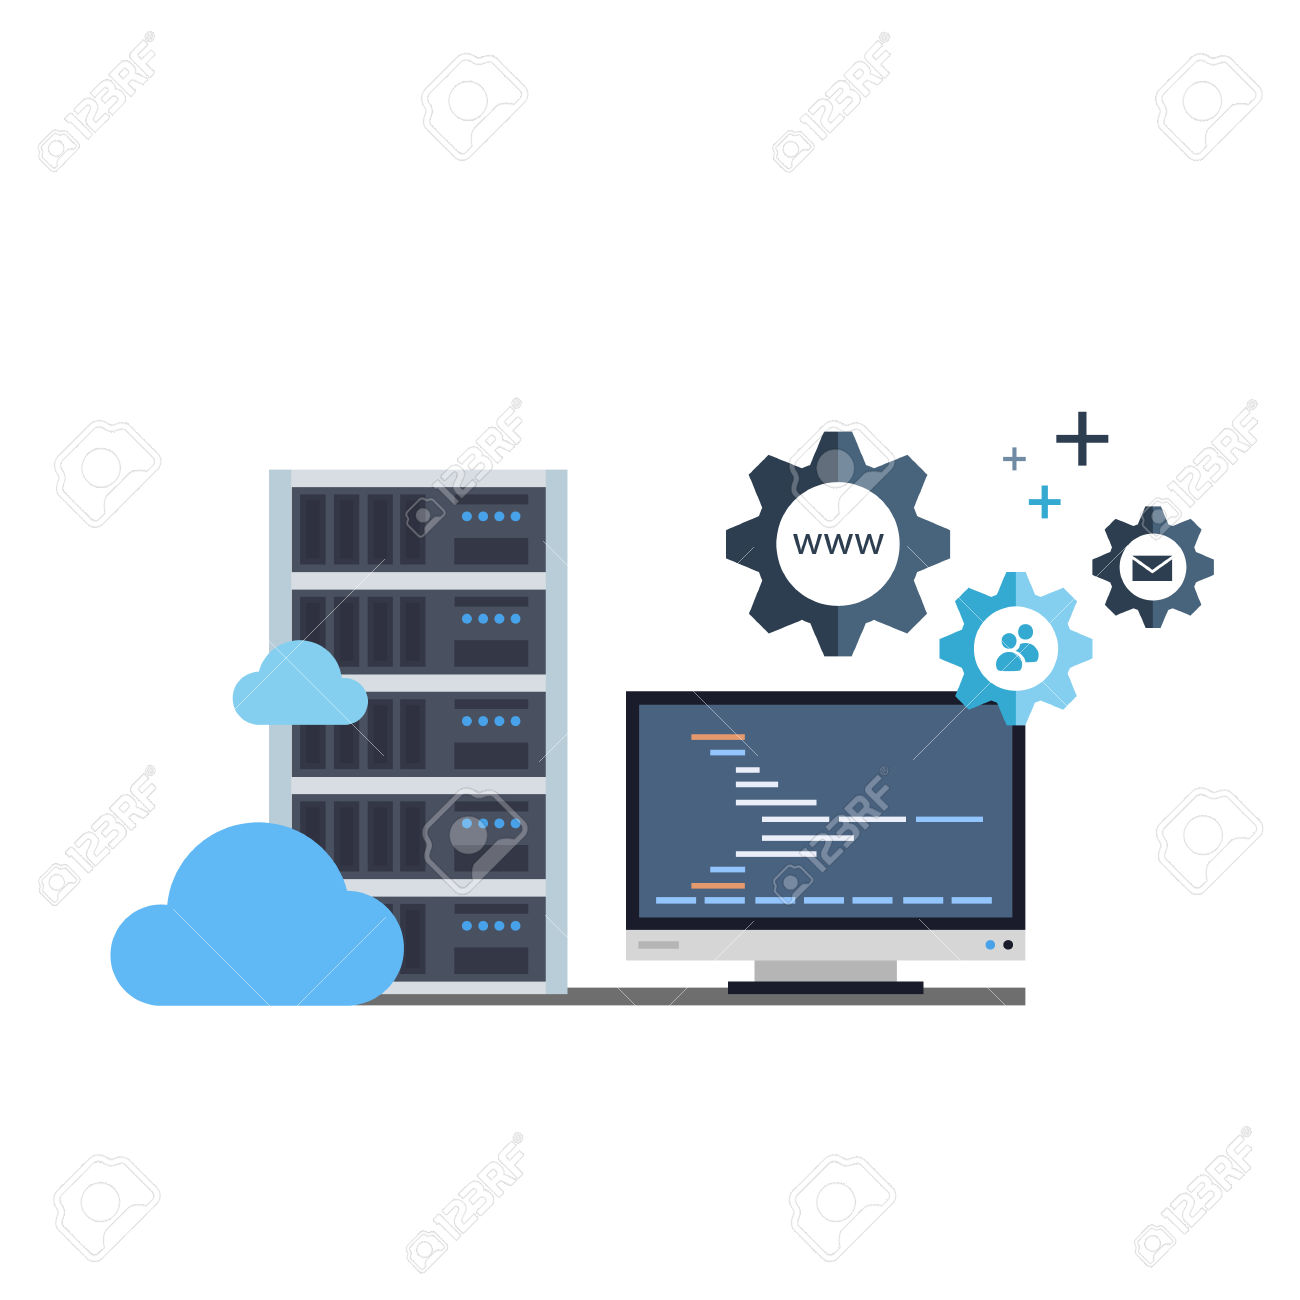 Conceptual Vector Flat Illustration of Server Rack, Monitor and Gears which is Depicting a Process of a Server Administration